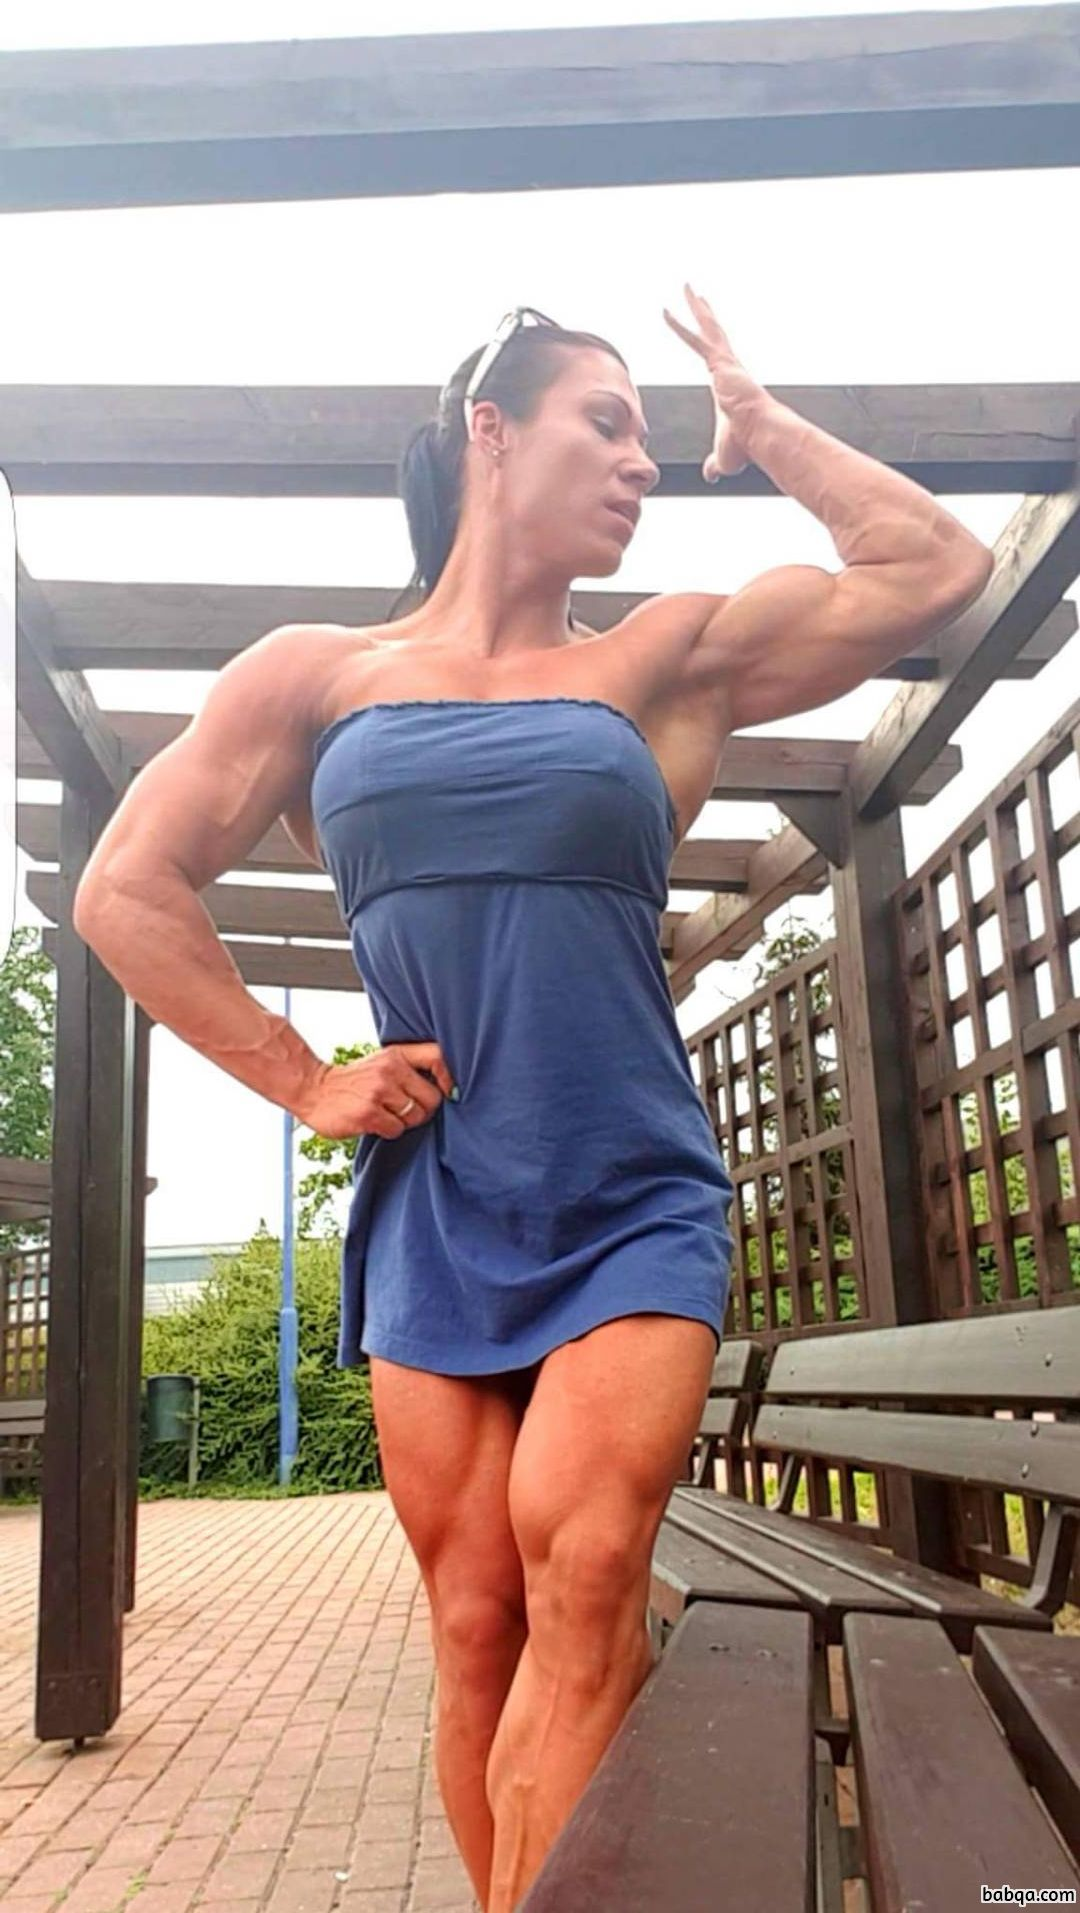 awesome female bodybuilder with muscle body and toned legs photo from g+